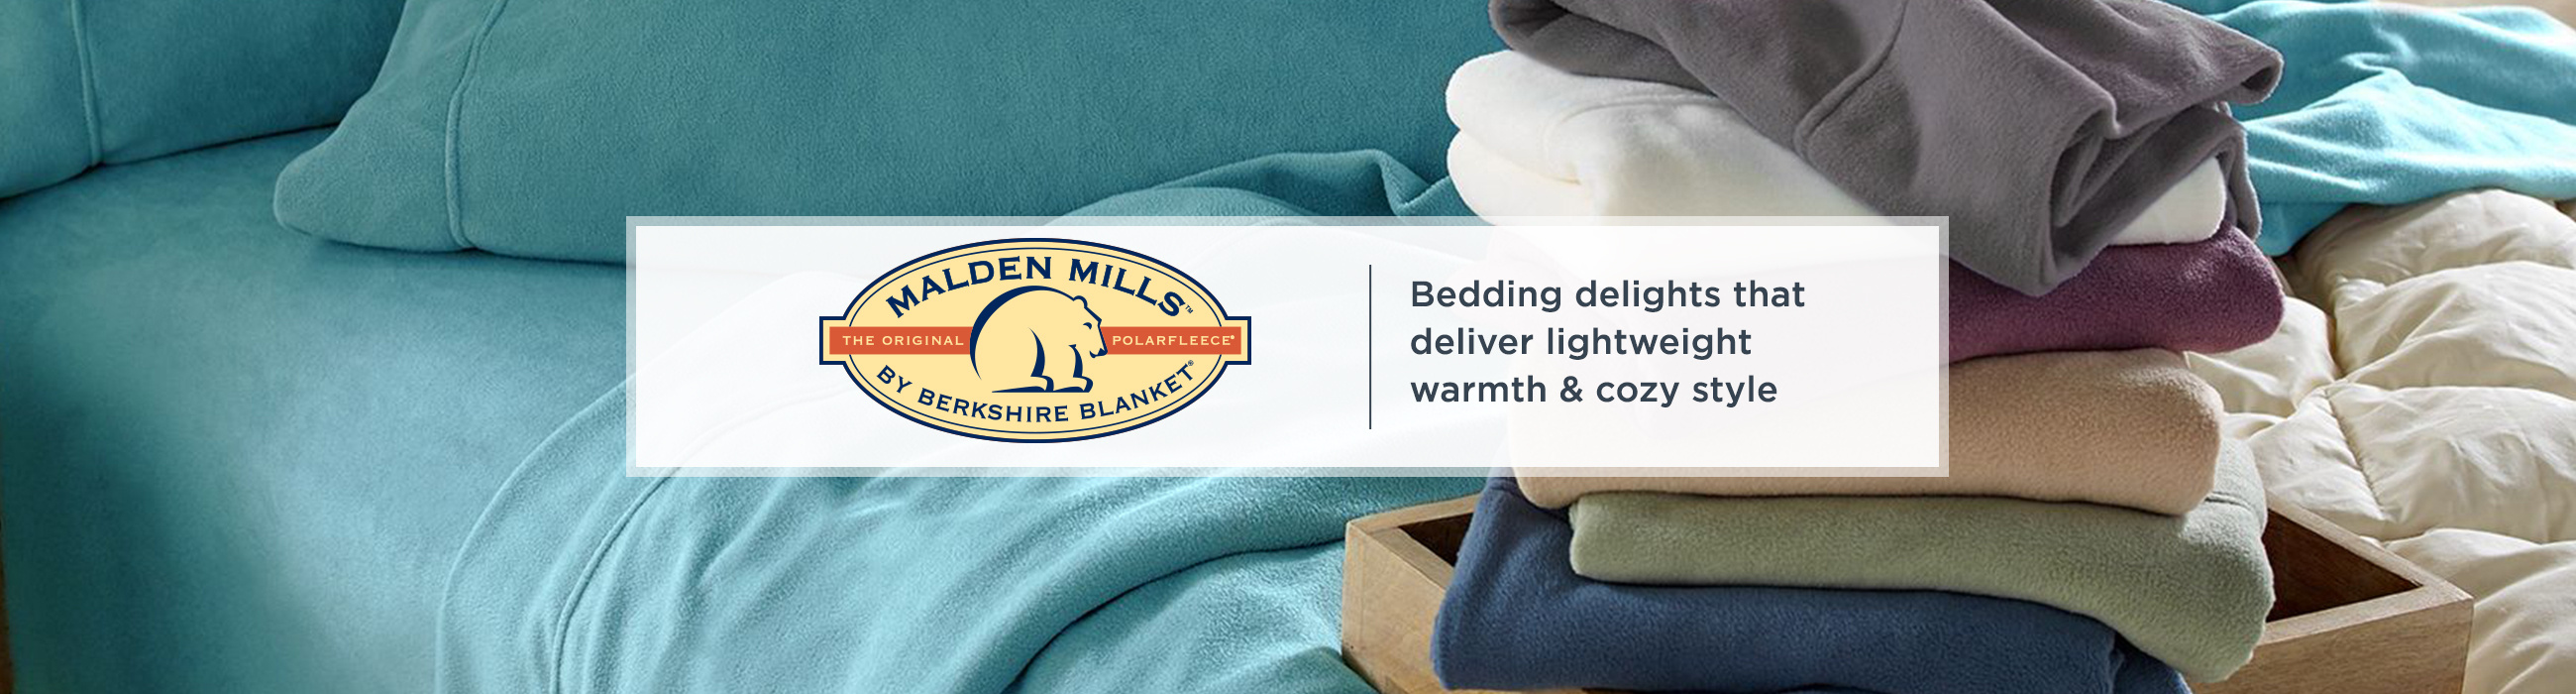 Malden Mills. Bedding delights that deliver lightweight warmth & cozy style